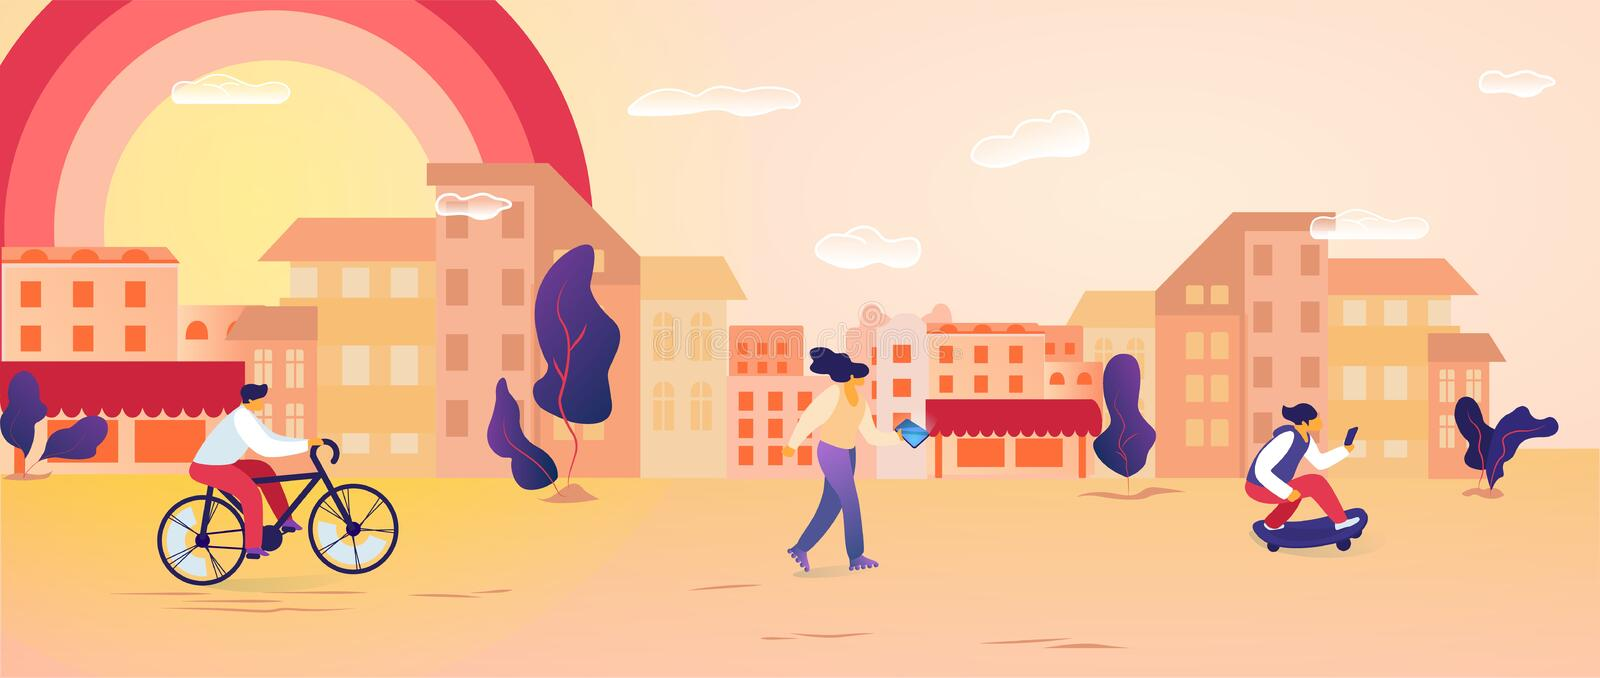 Male and Female Characters Spend Time Outdoors. Riding Bicycle, Skateboarding, Using Gadgets. People Characters Walking in Modern City at Summertime. Urban royalty free illustration